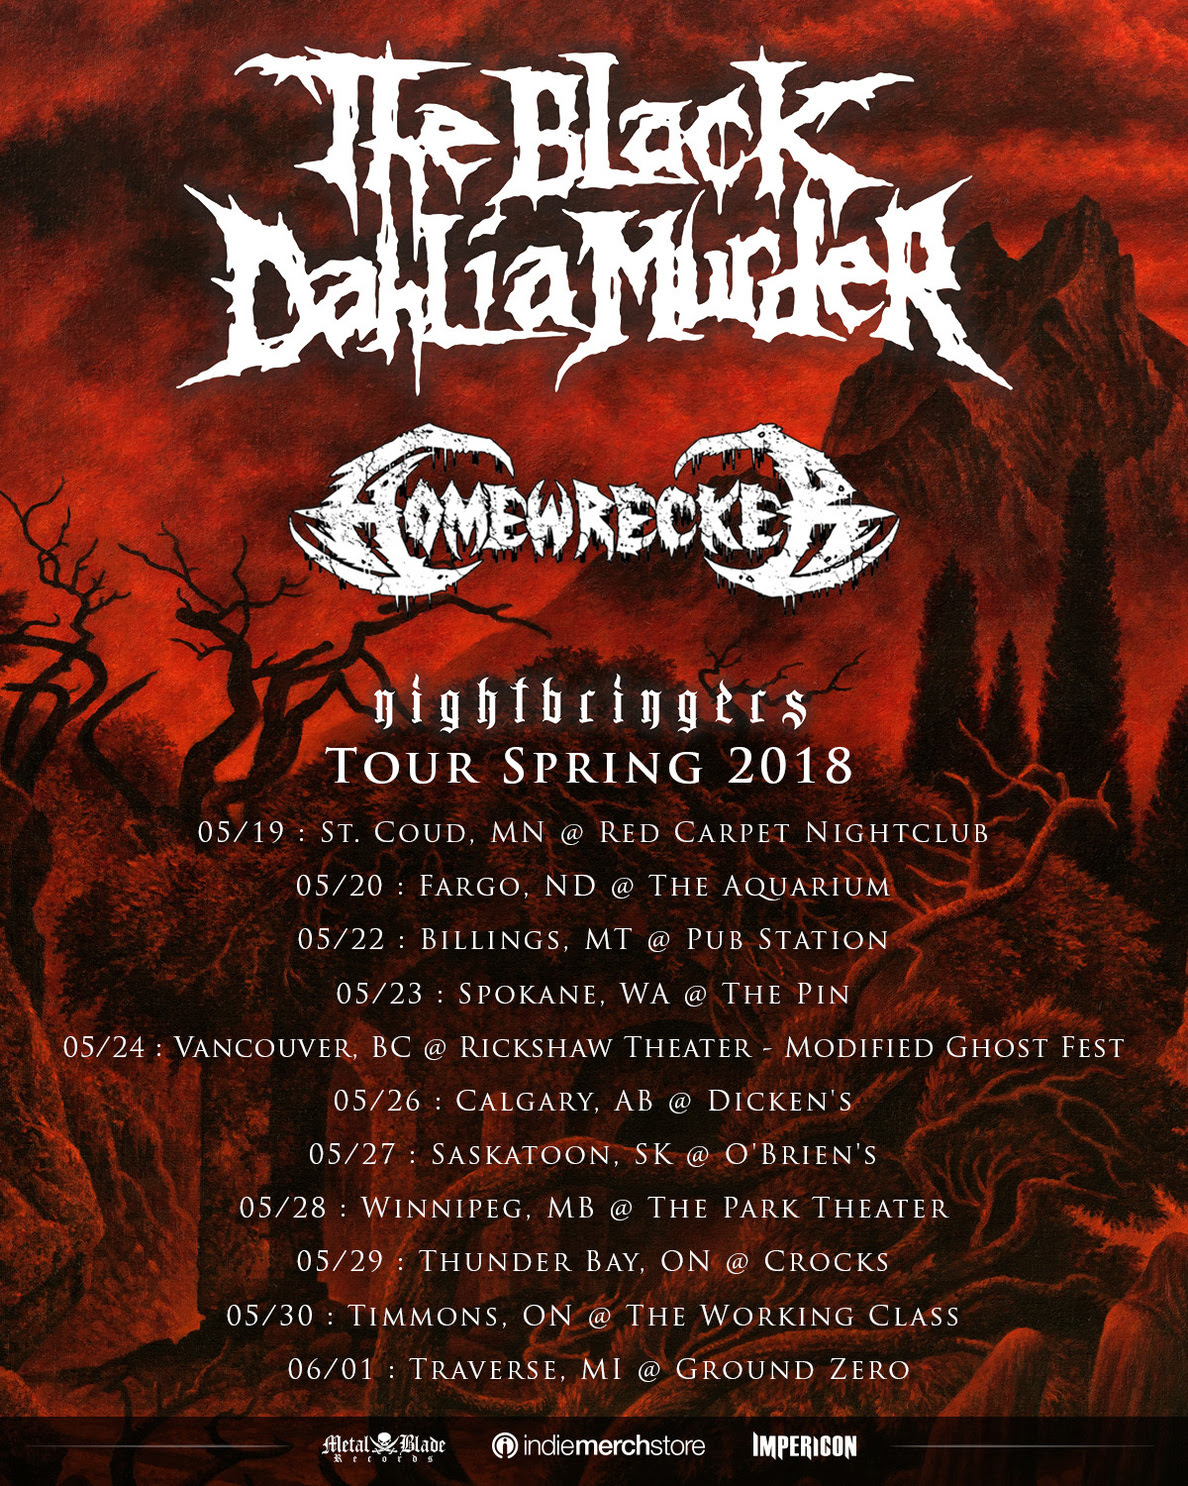 The Black Dahlia Murder announces spring tour dates in North America, featuring Homewrecker as support